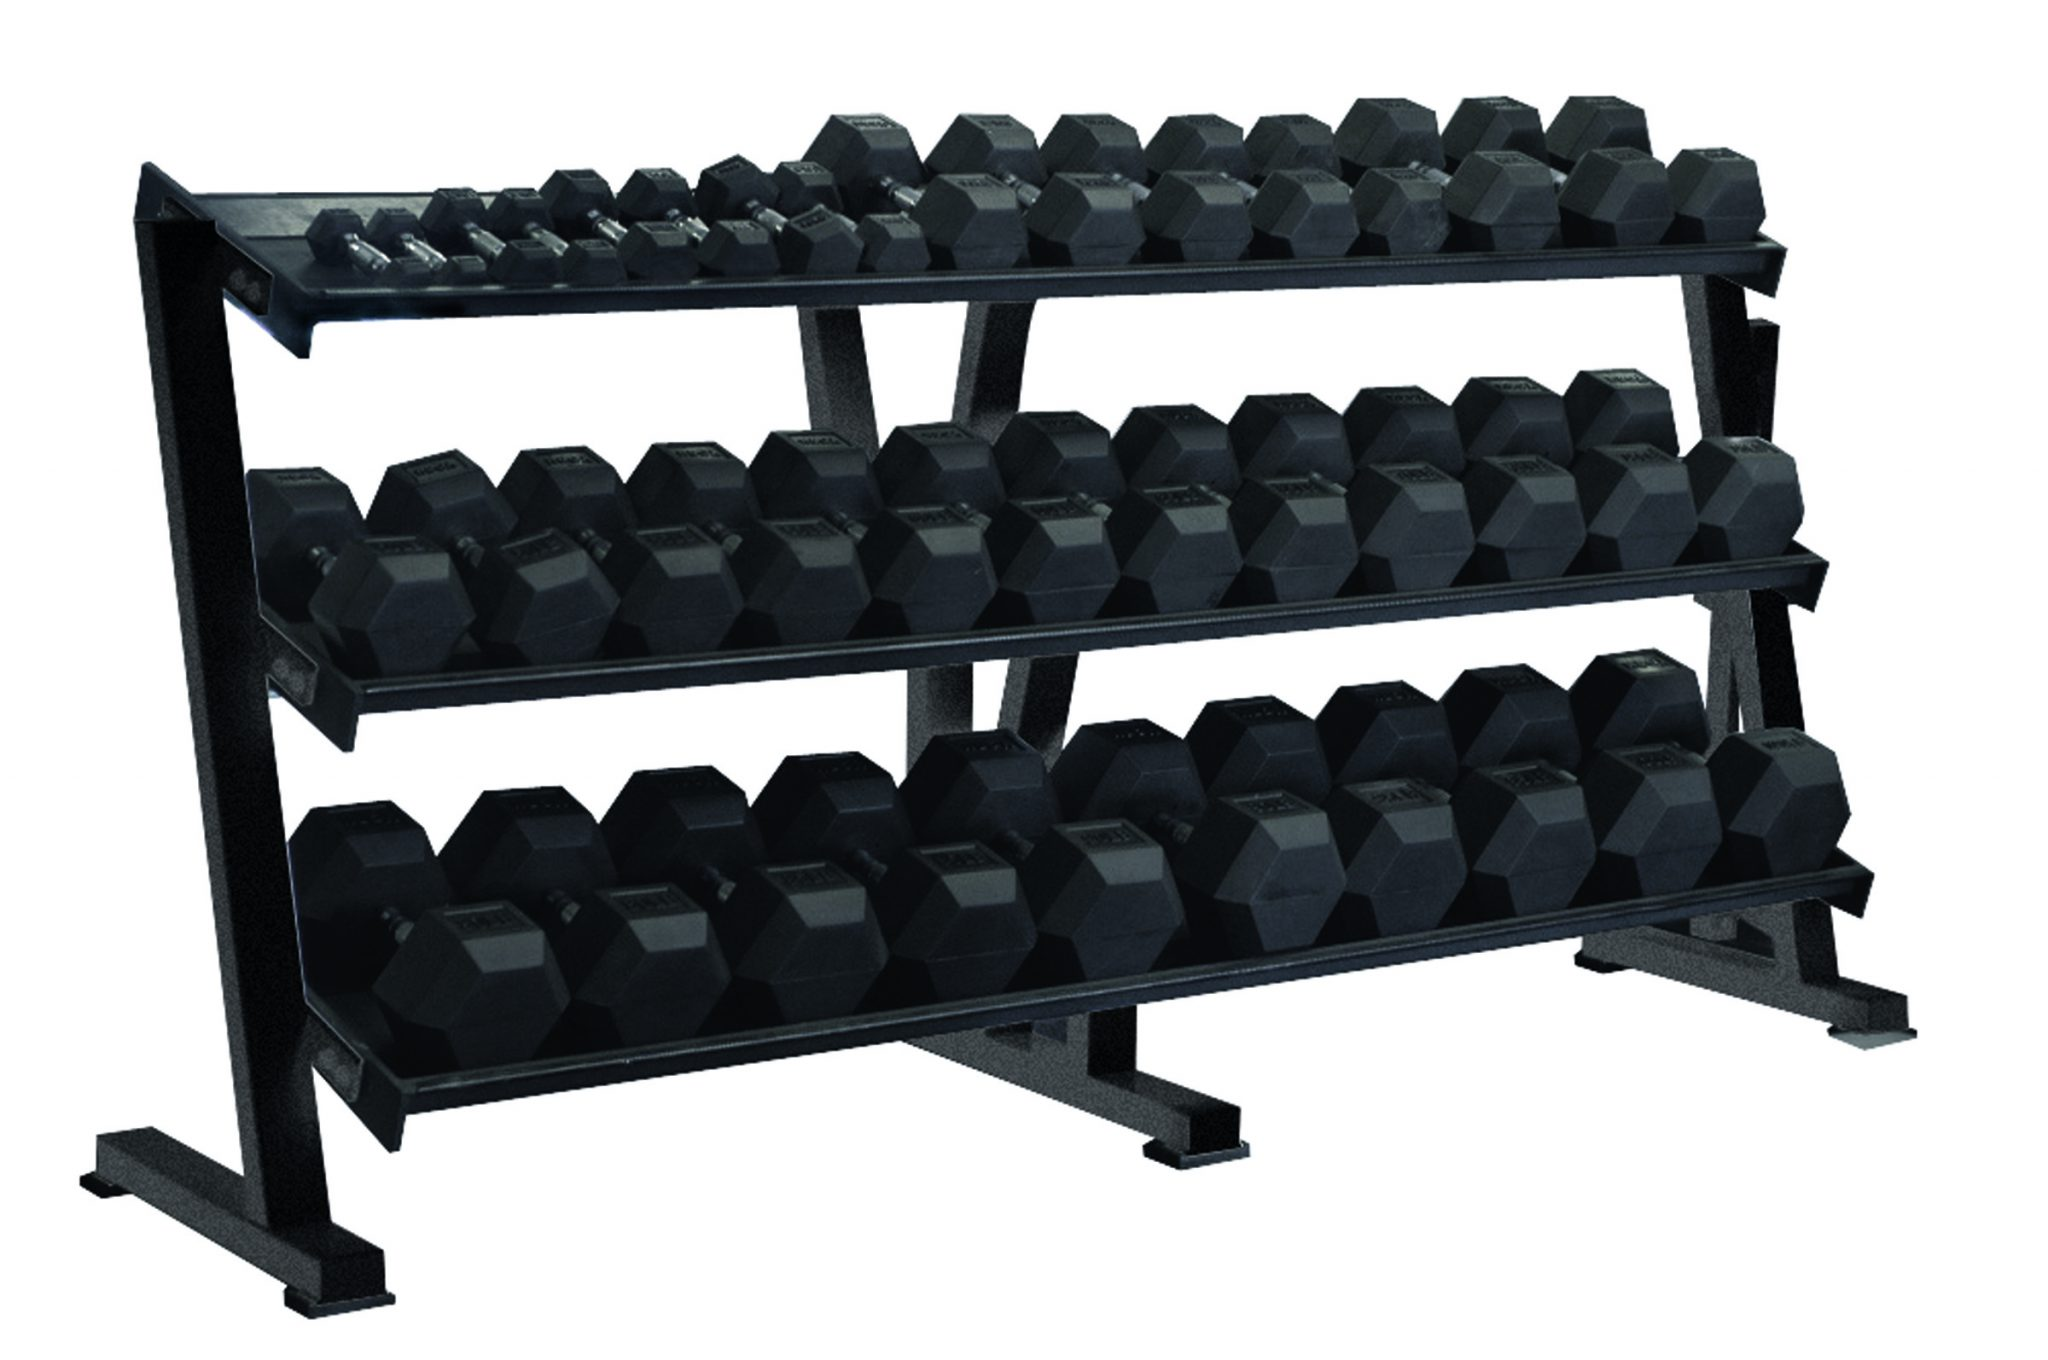 Dumbbell Storage Racks & Stands